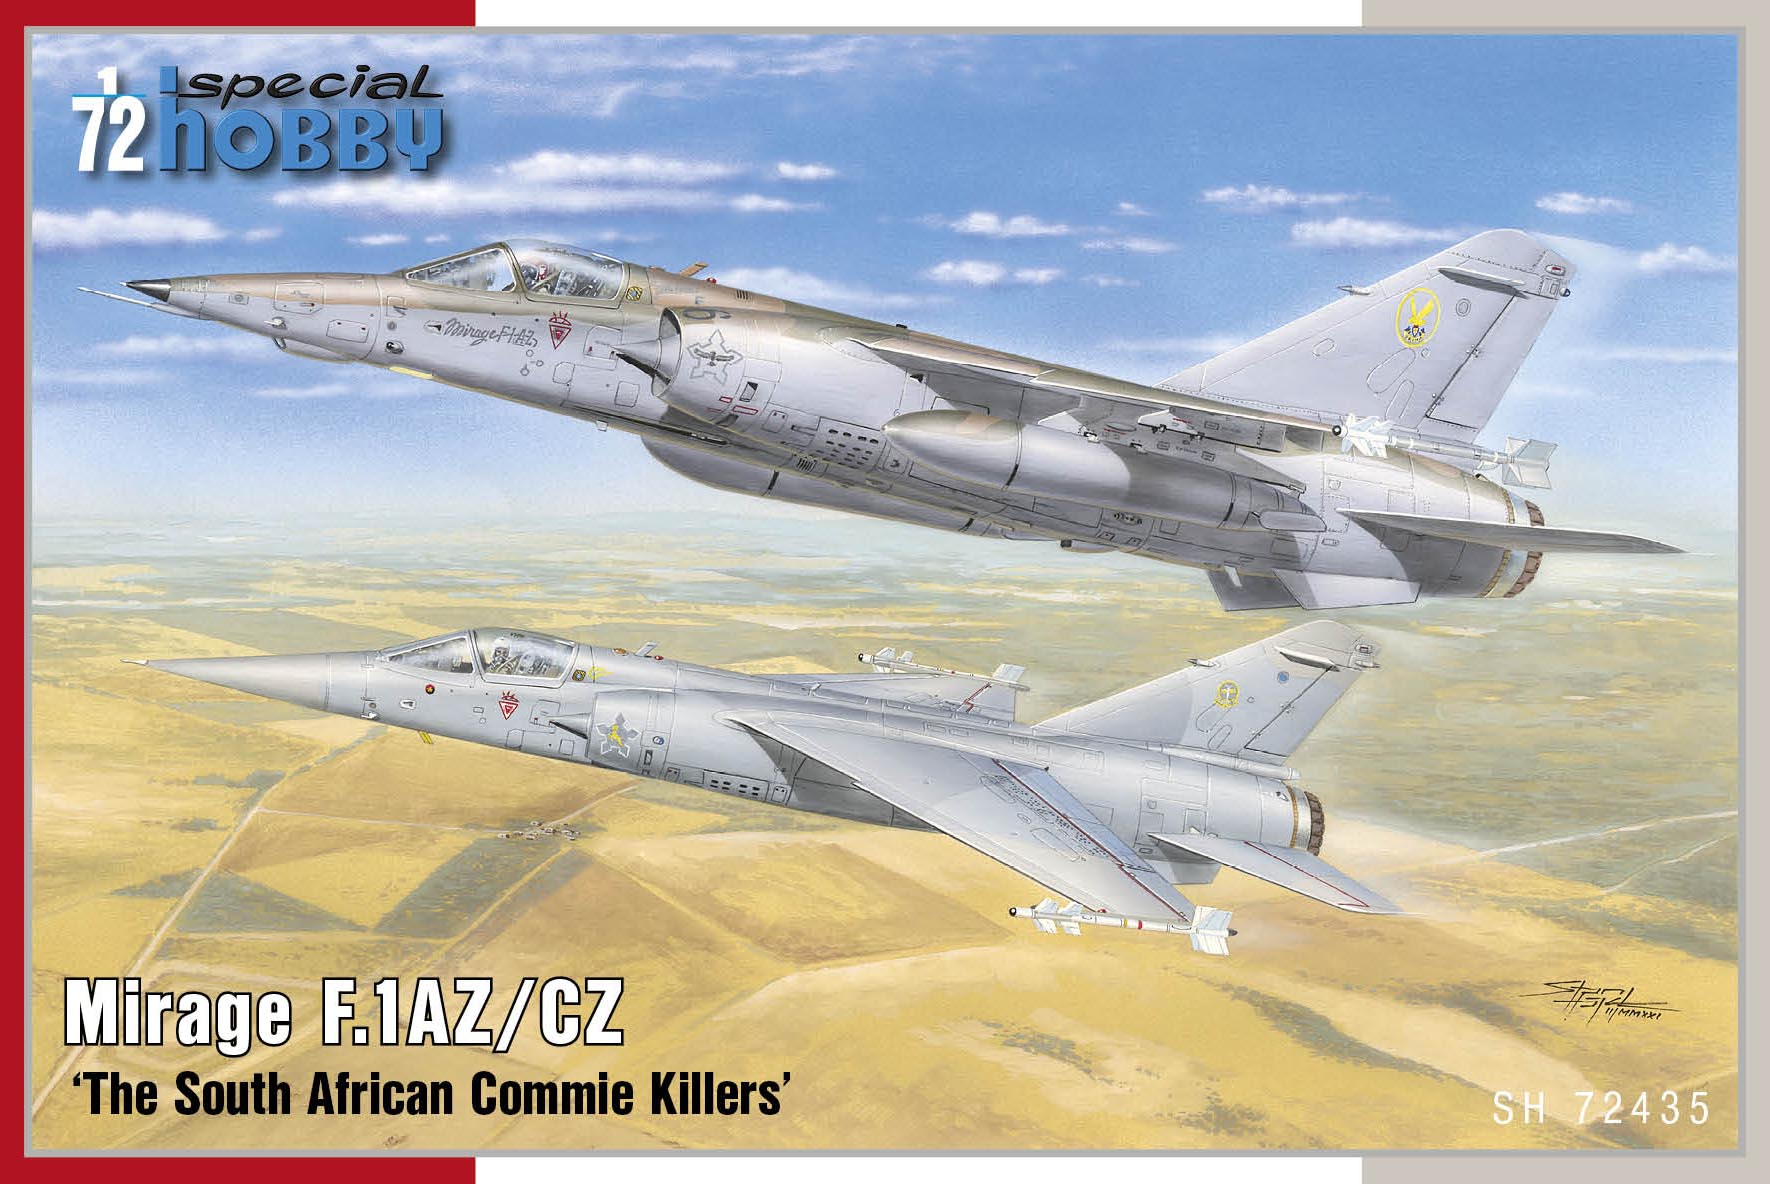 Special Hobby 1/72 Mirage F.1AZ/AC 'The South African Commie Killers'